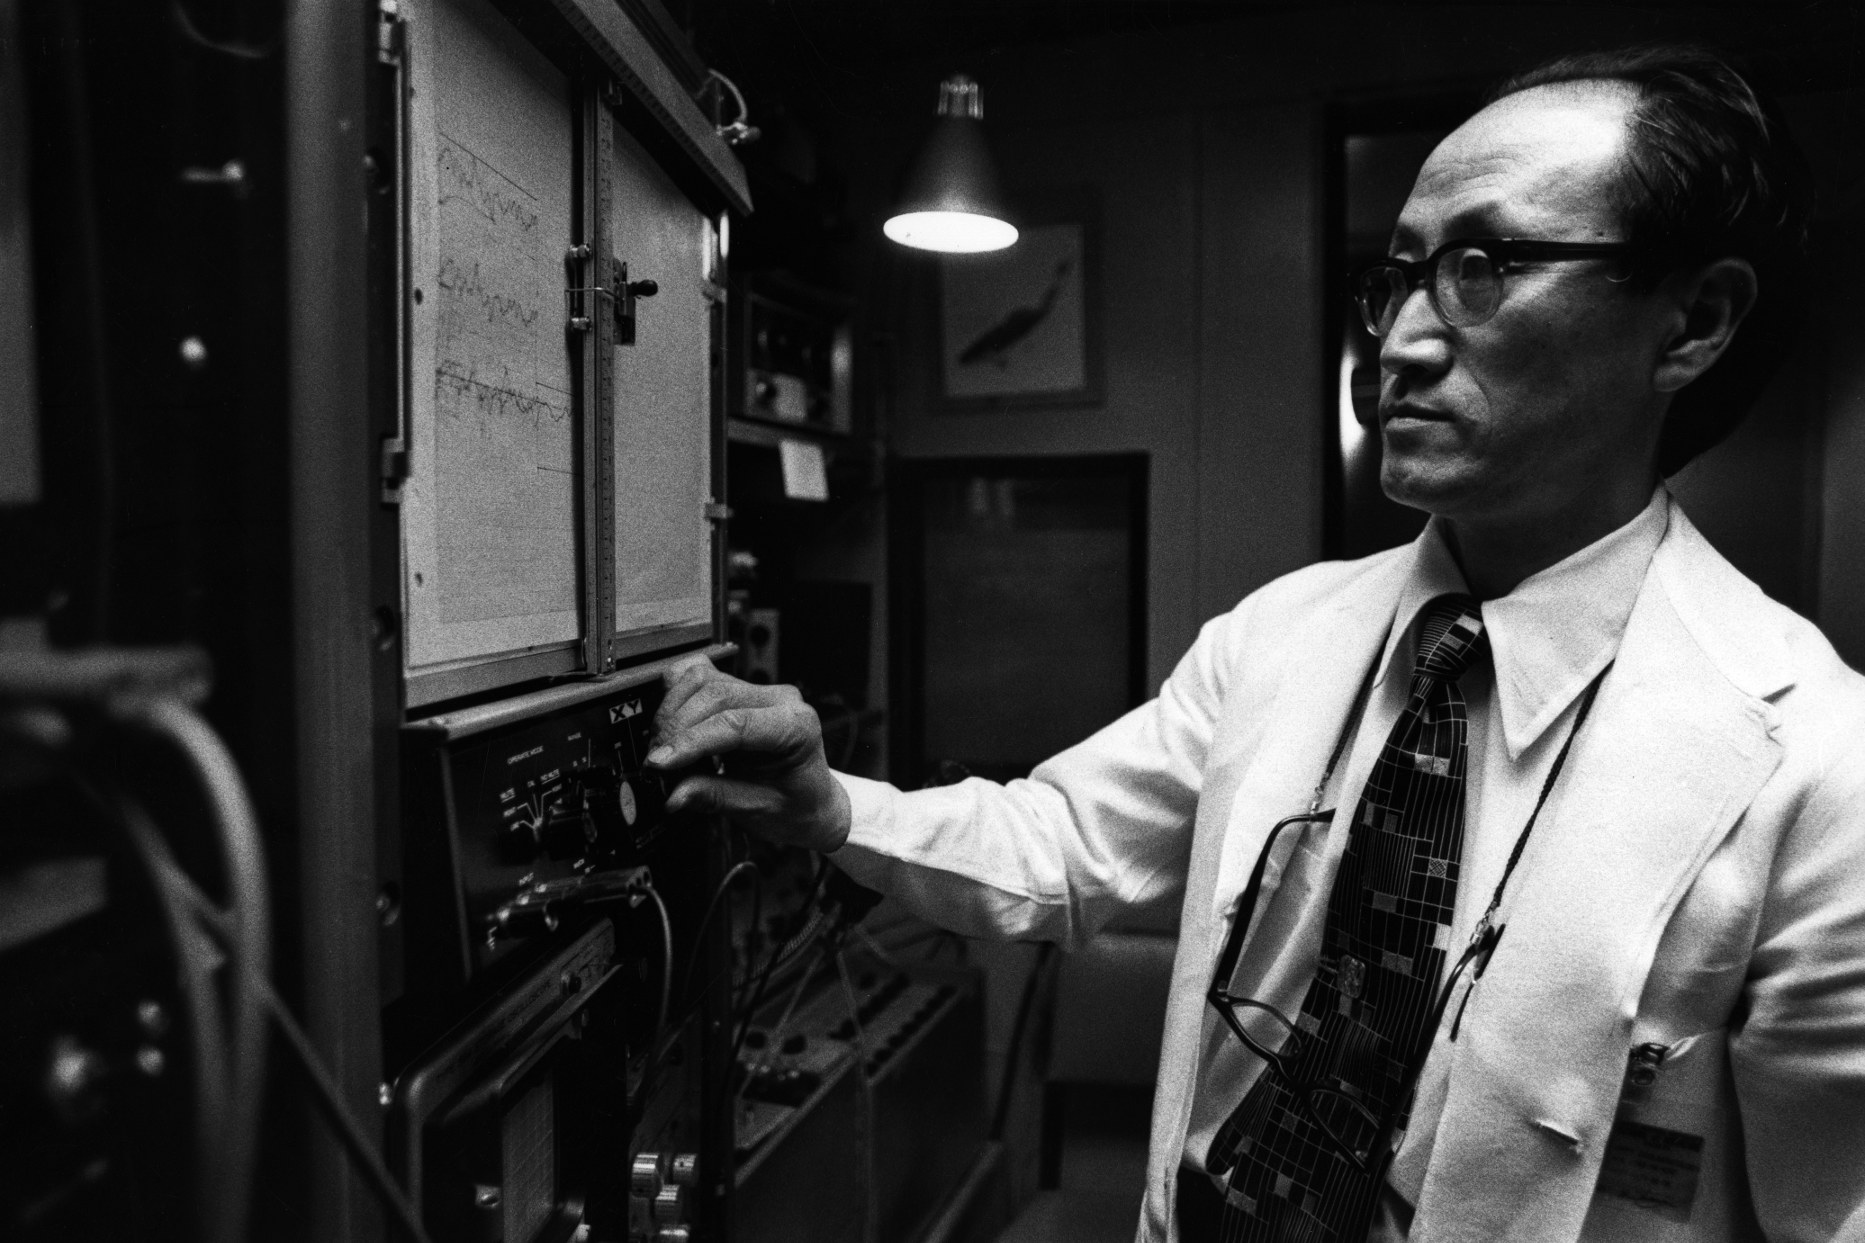 Hiroshi Shimizu at work in Hearing and Speech Clinic Laboratory